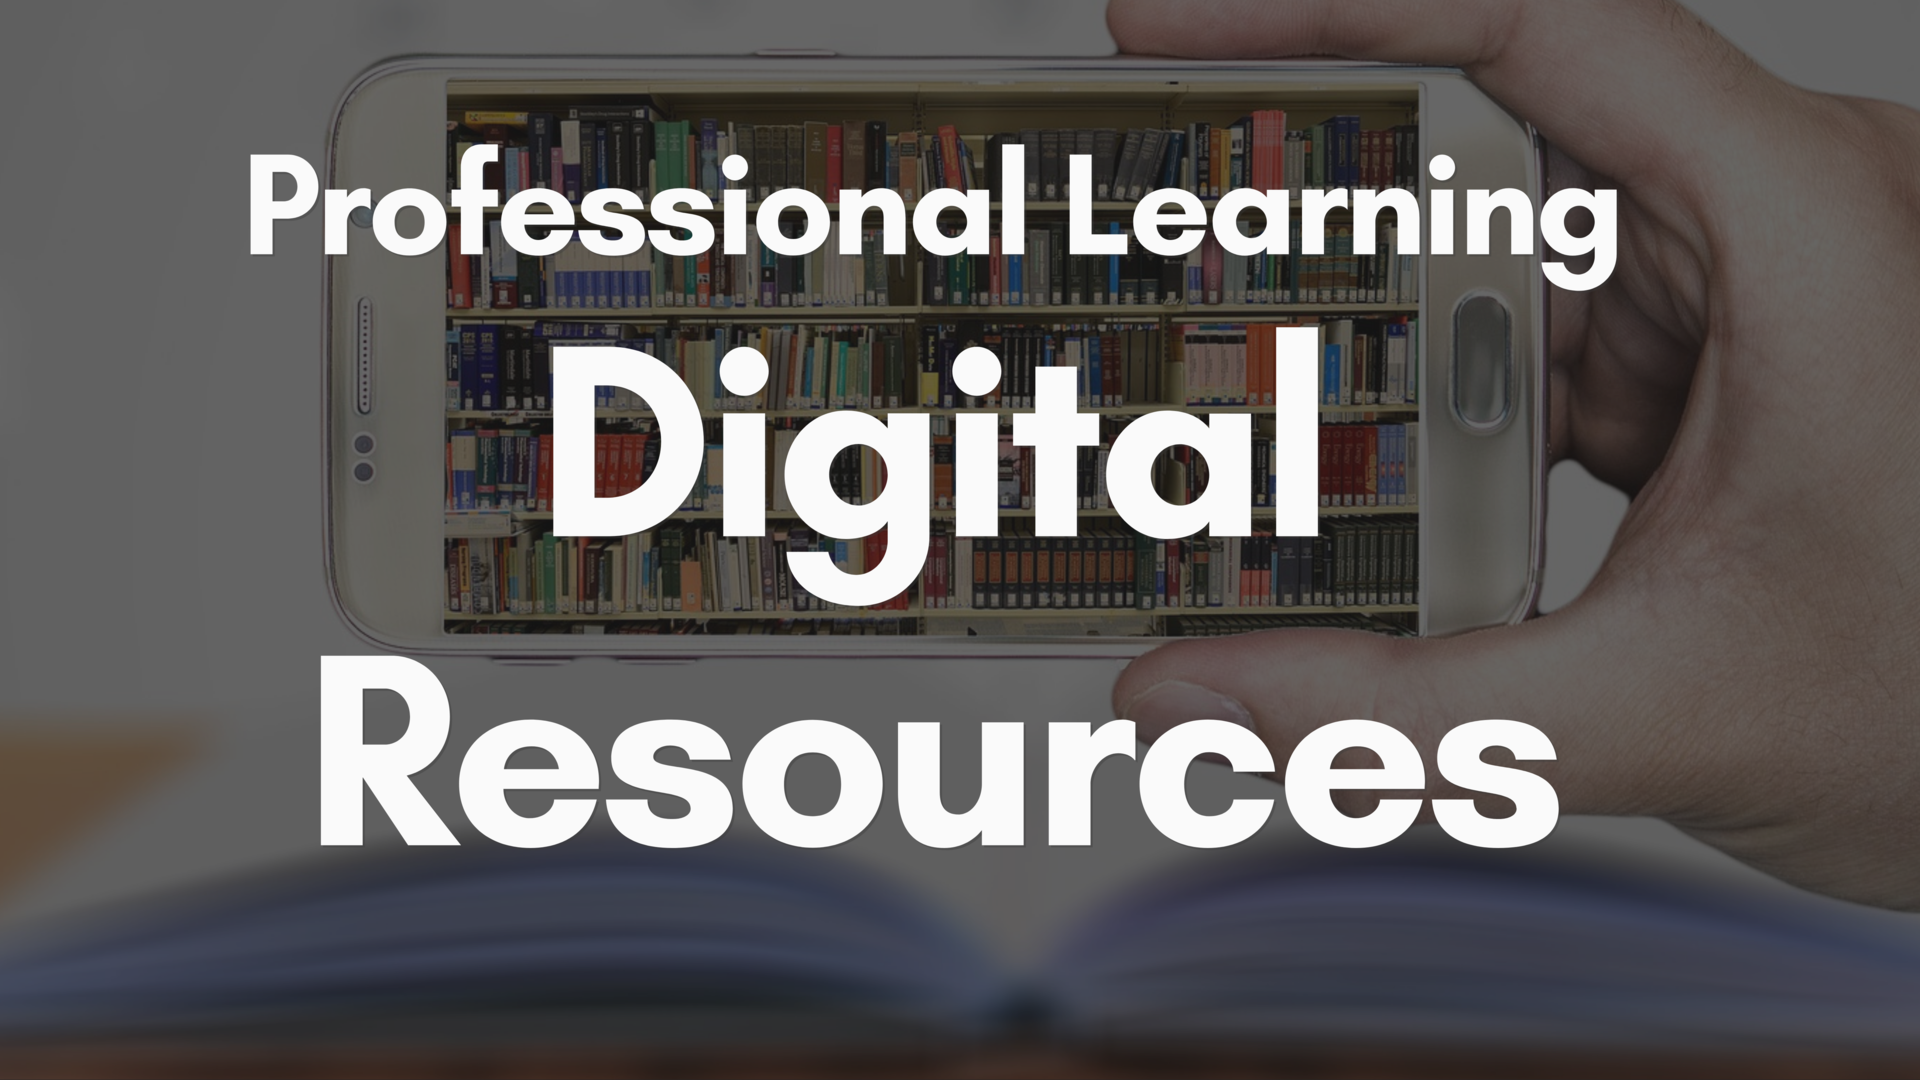 Professional Learning Resources Link